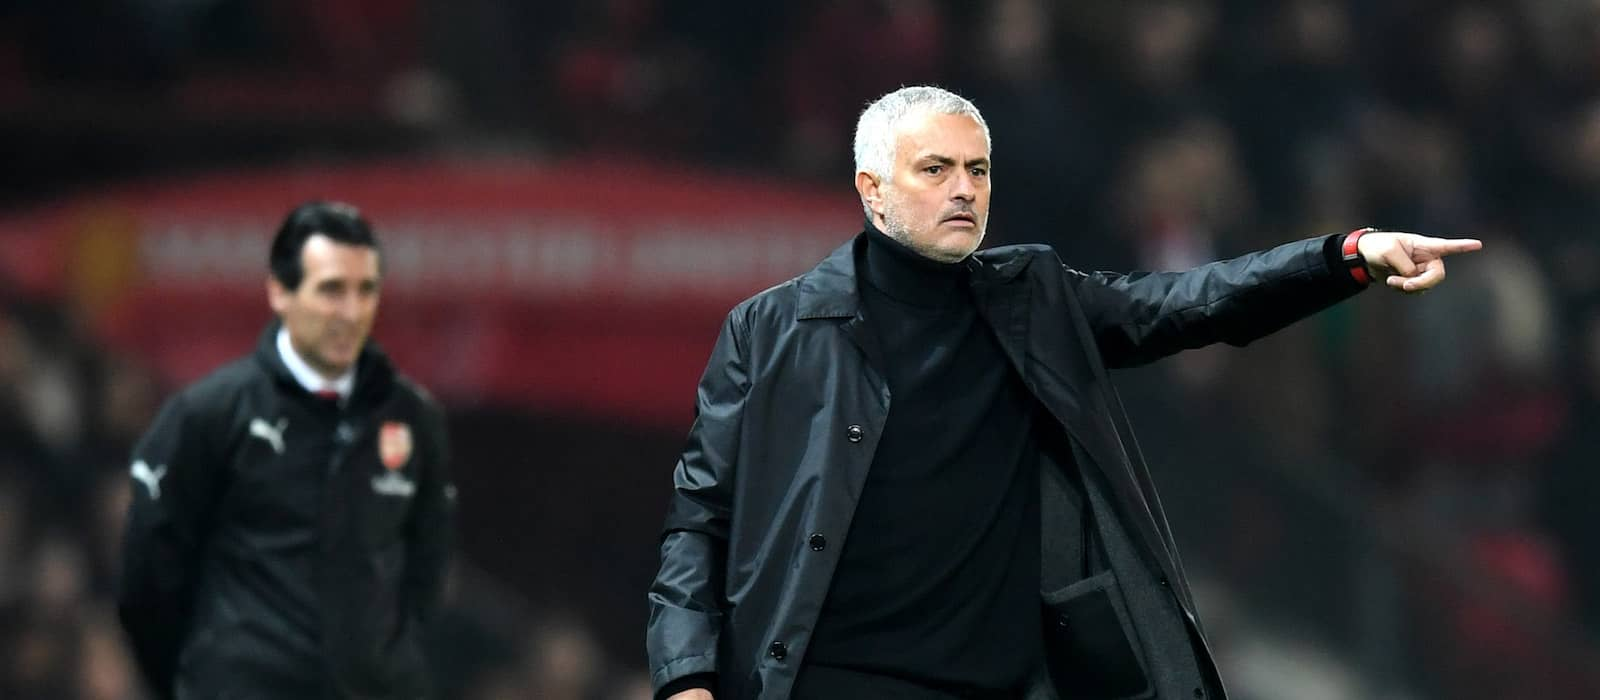 Jose Mourinho: Manchester United shot themselves in the foot against Arsenal